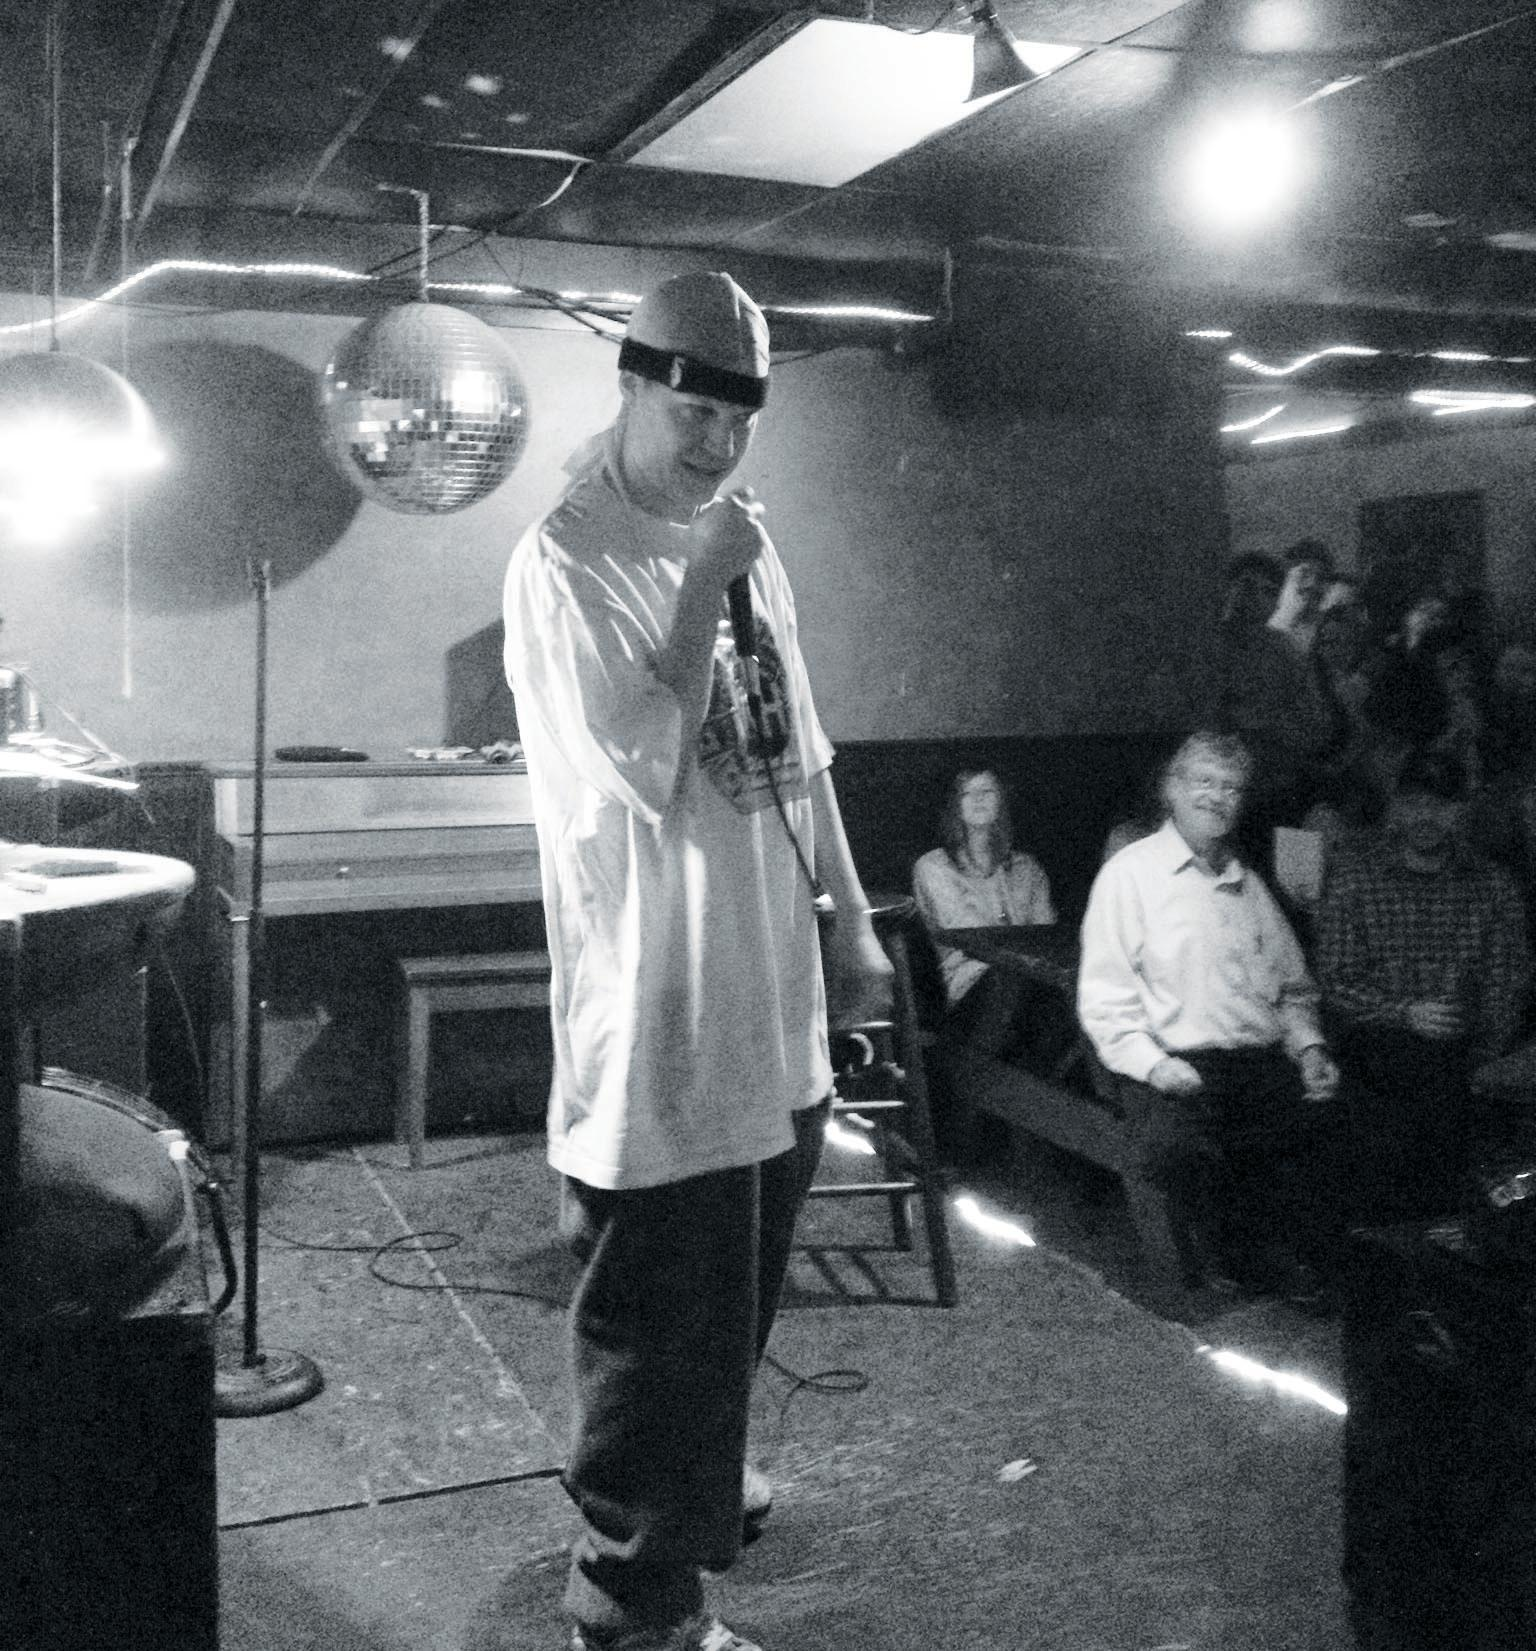 Popular New Orleans comedian Chad Meyers performed his final New Orleans act at the Lost Love Lounge on Nov. 28.